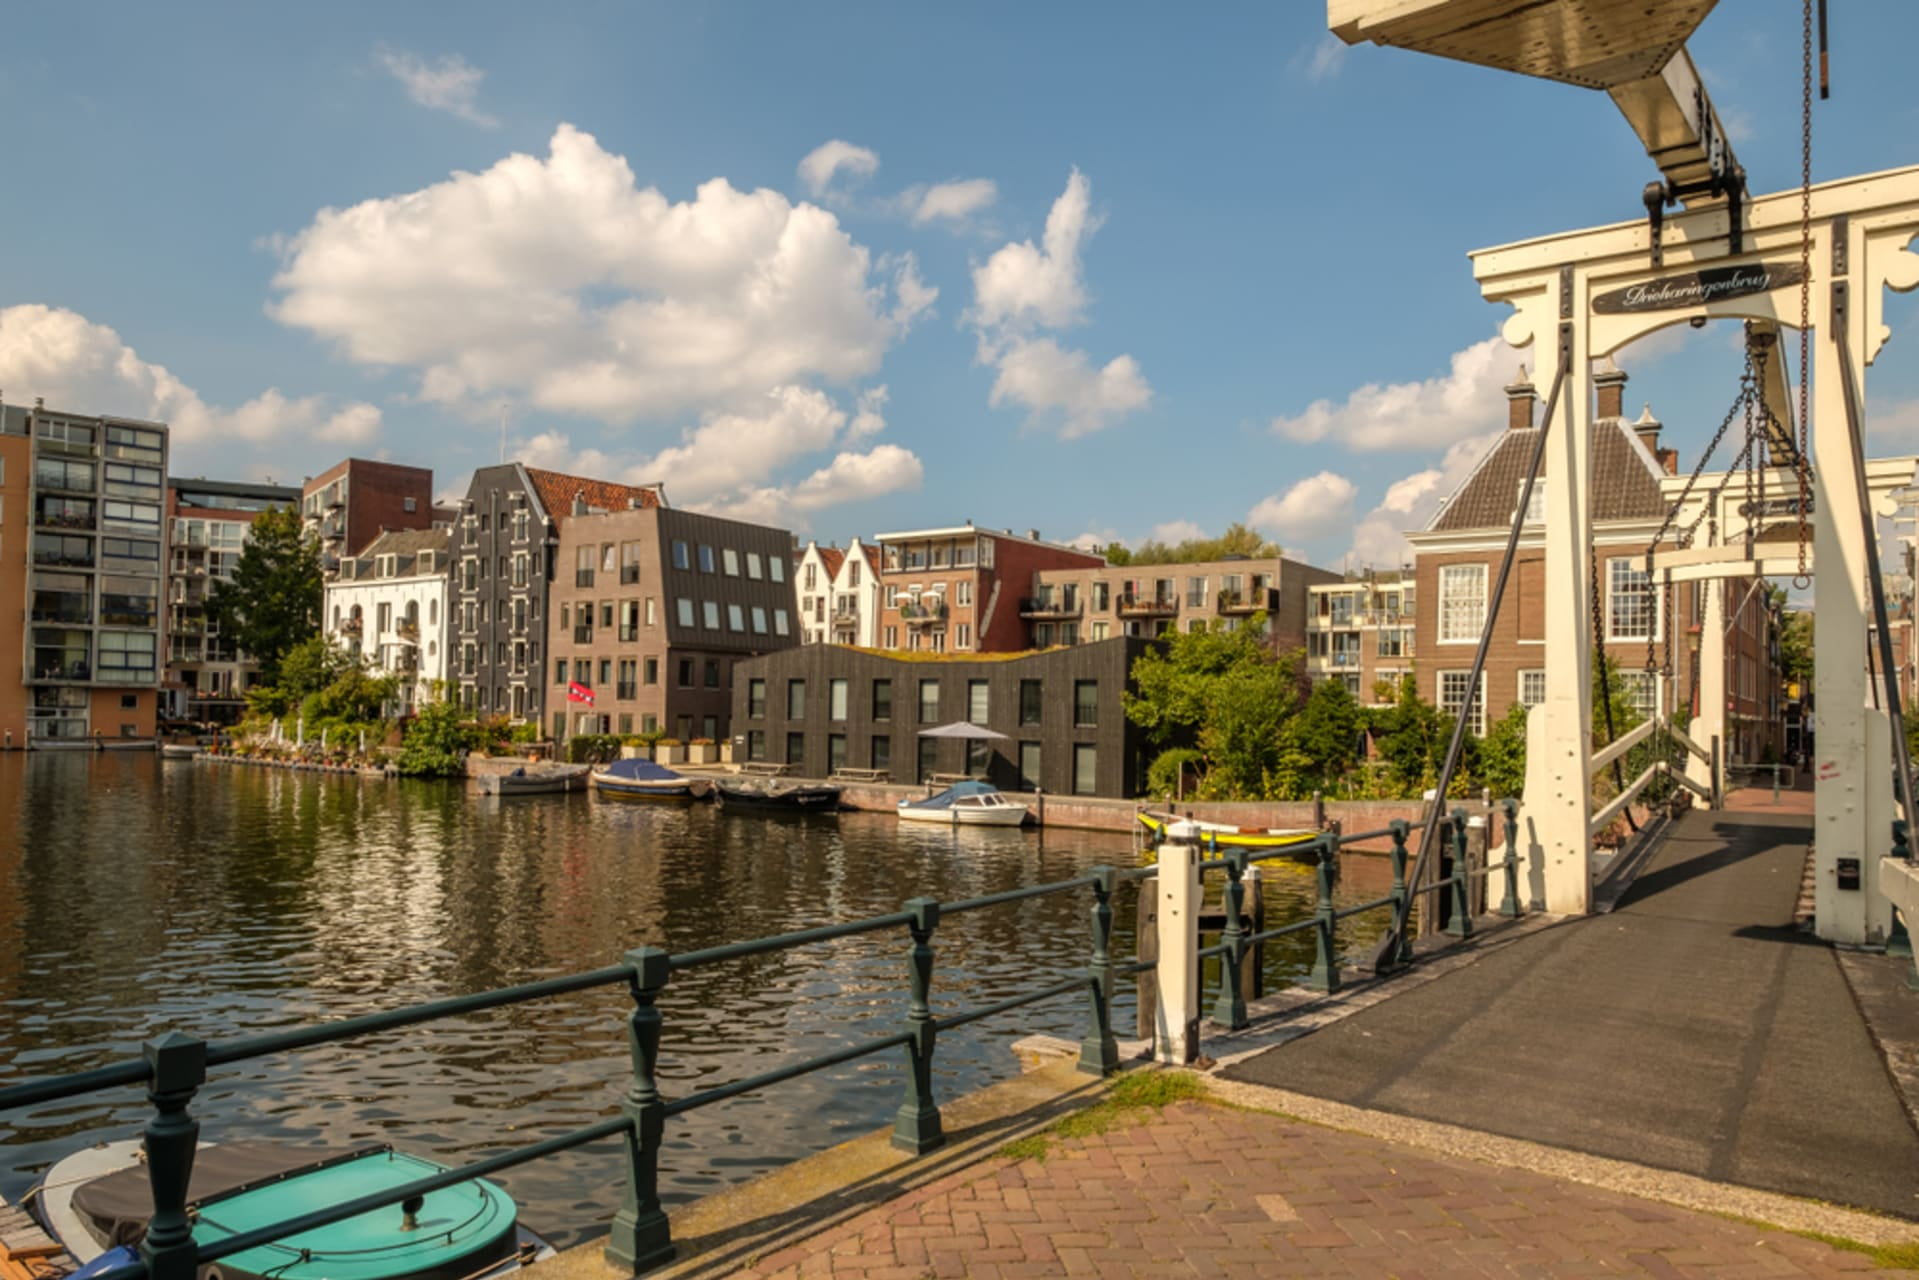 Amsterdam - Western Islands and NDSM Wharf by Boat